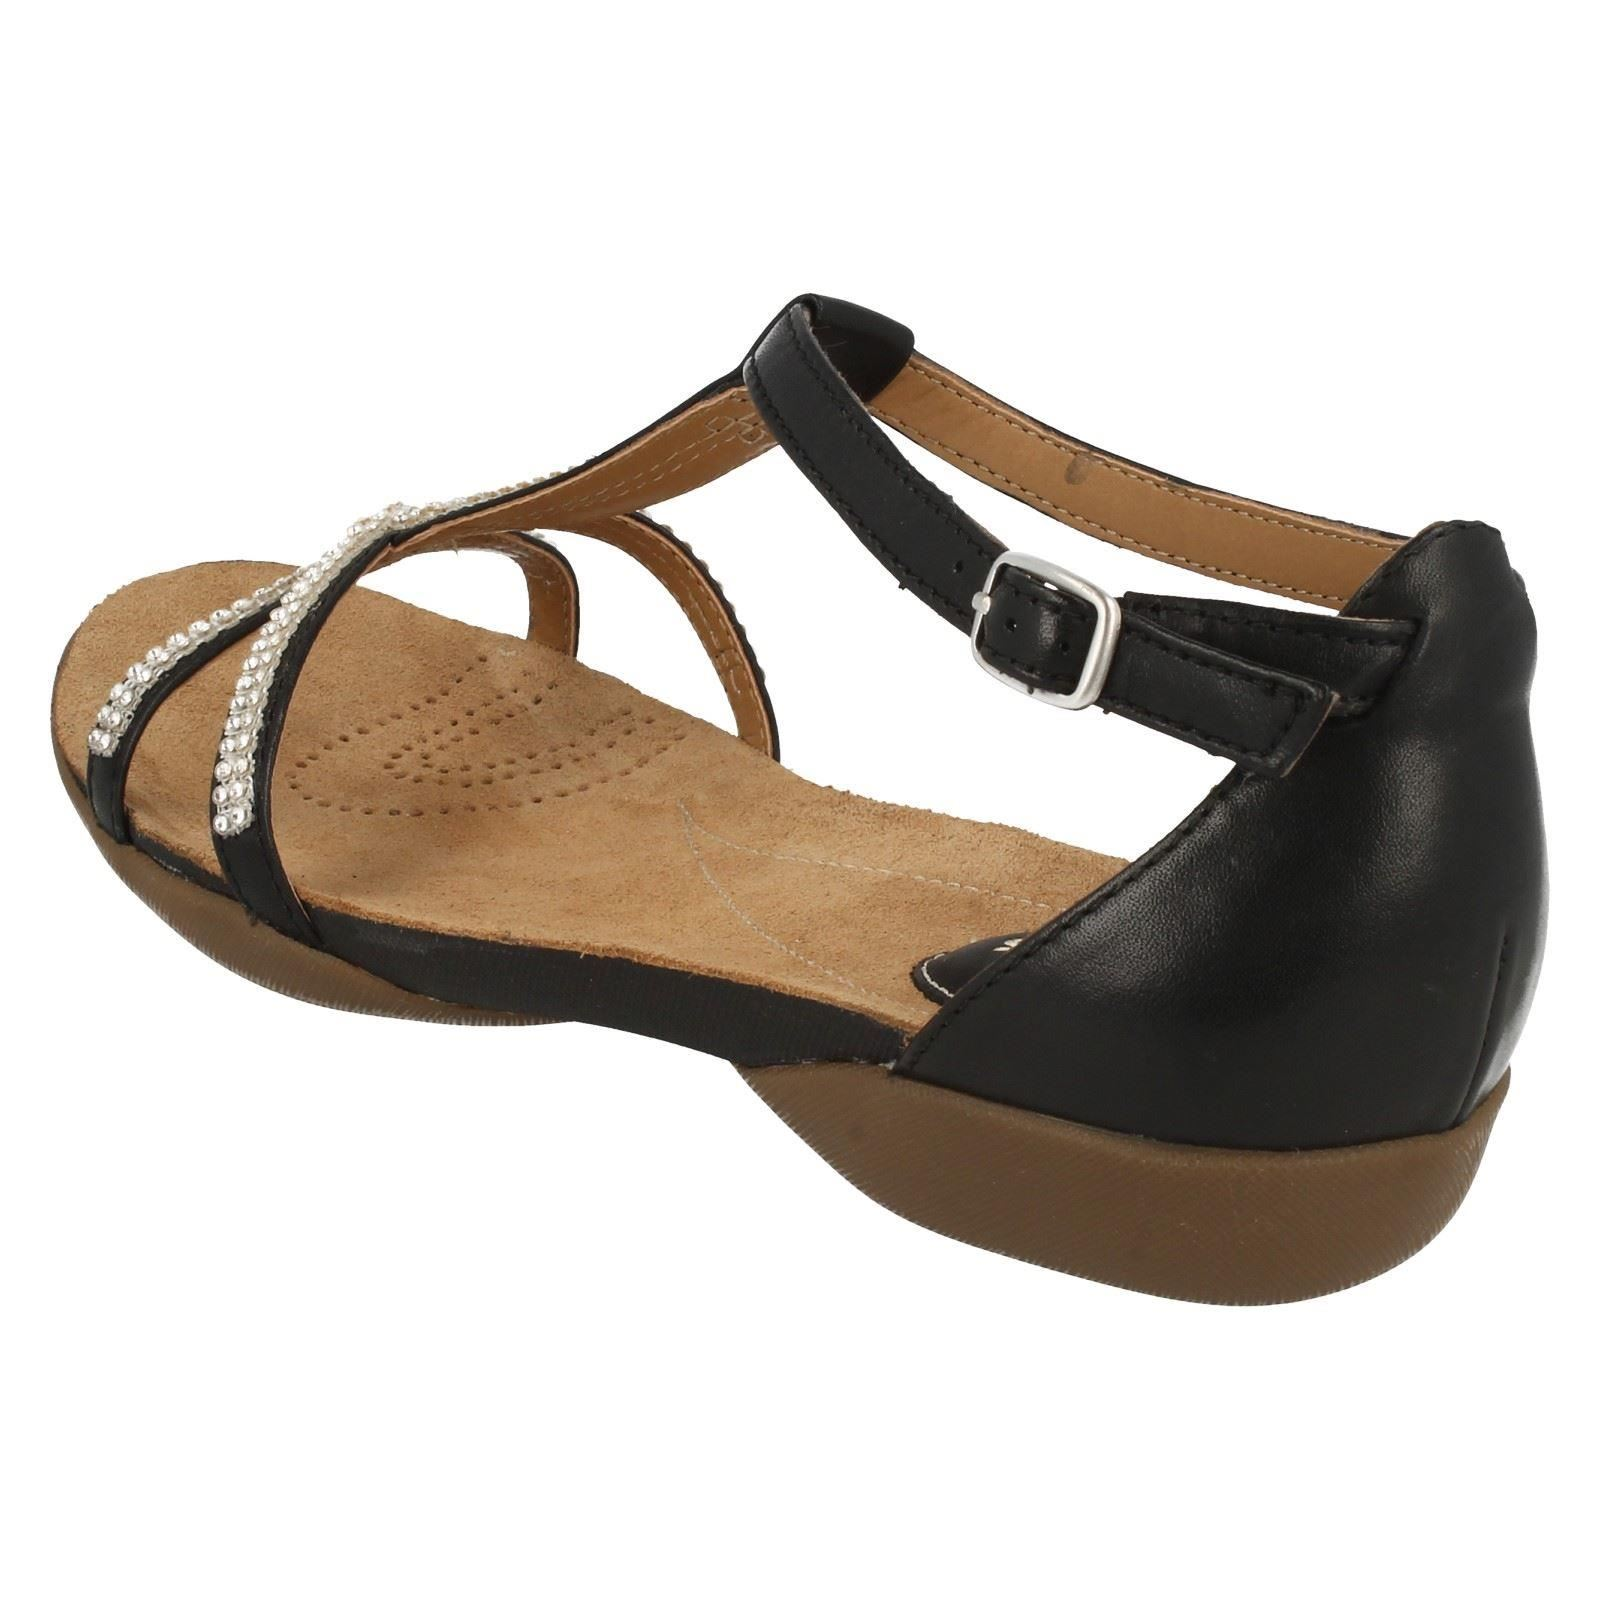 2d2eff9ad485d Ladies-Clarks-Casual-Summer-Sandals-Raffi-Star thumbnail 10